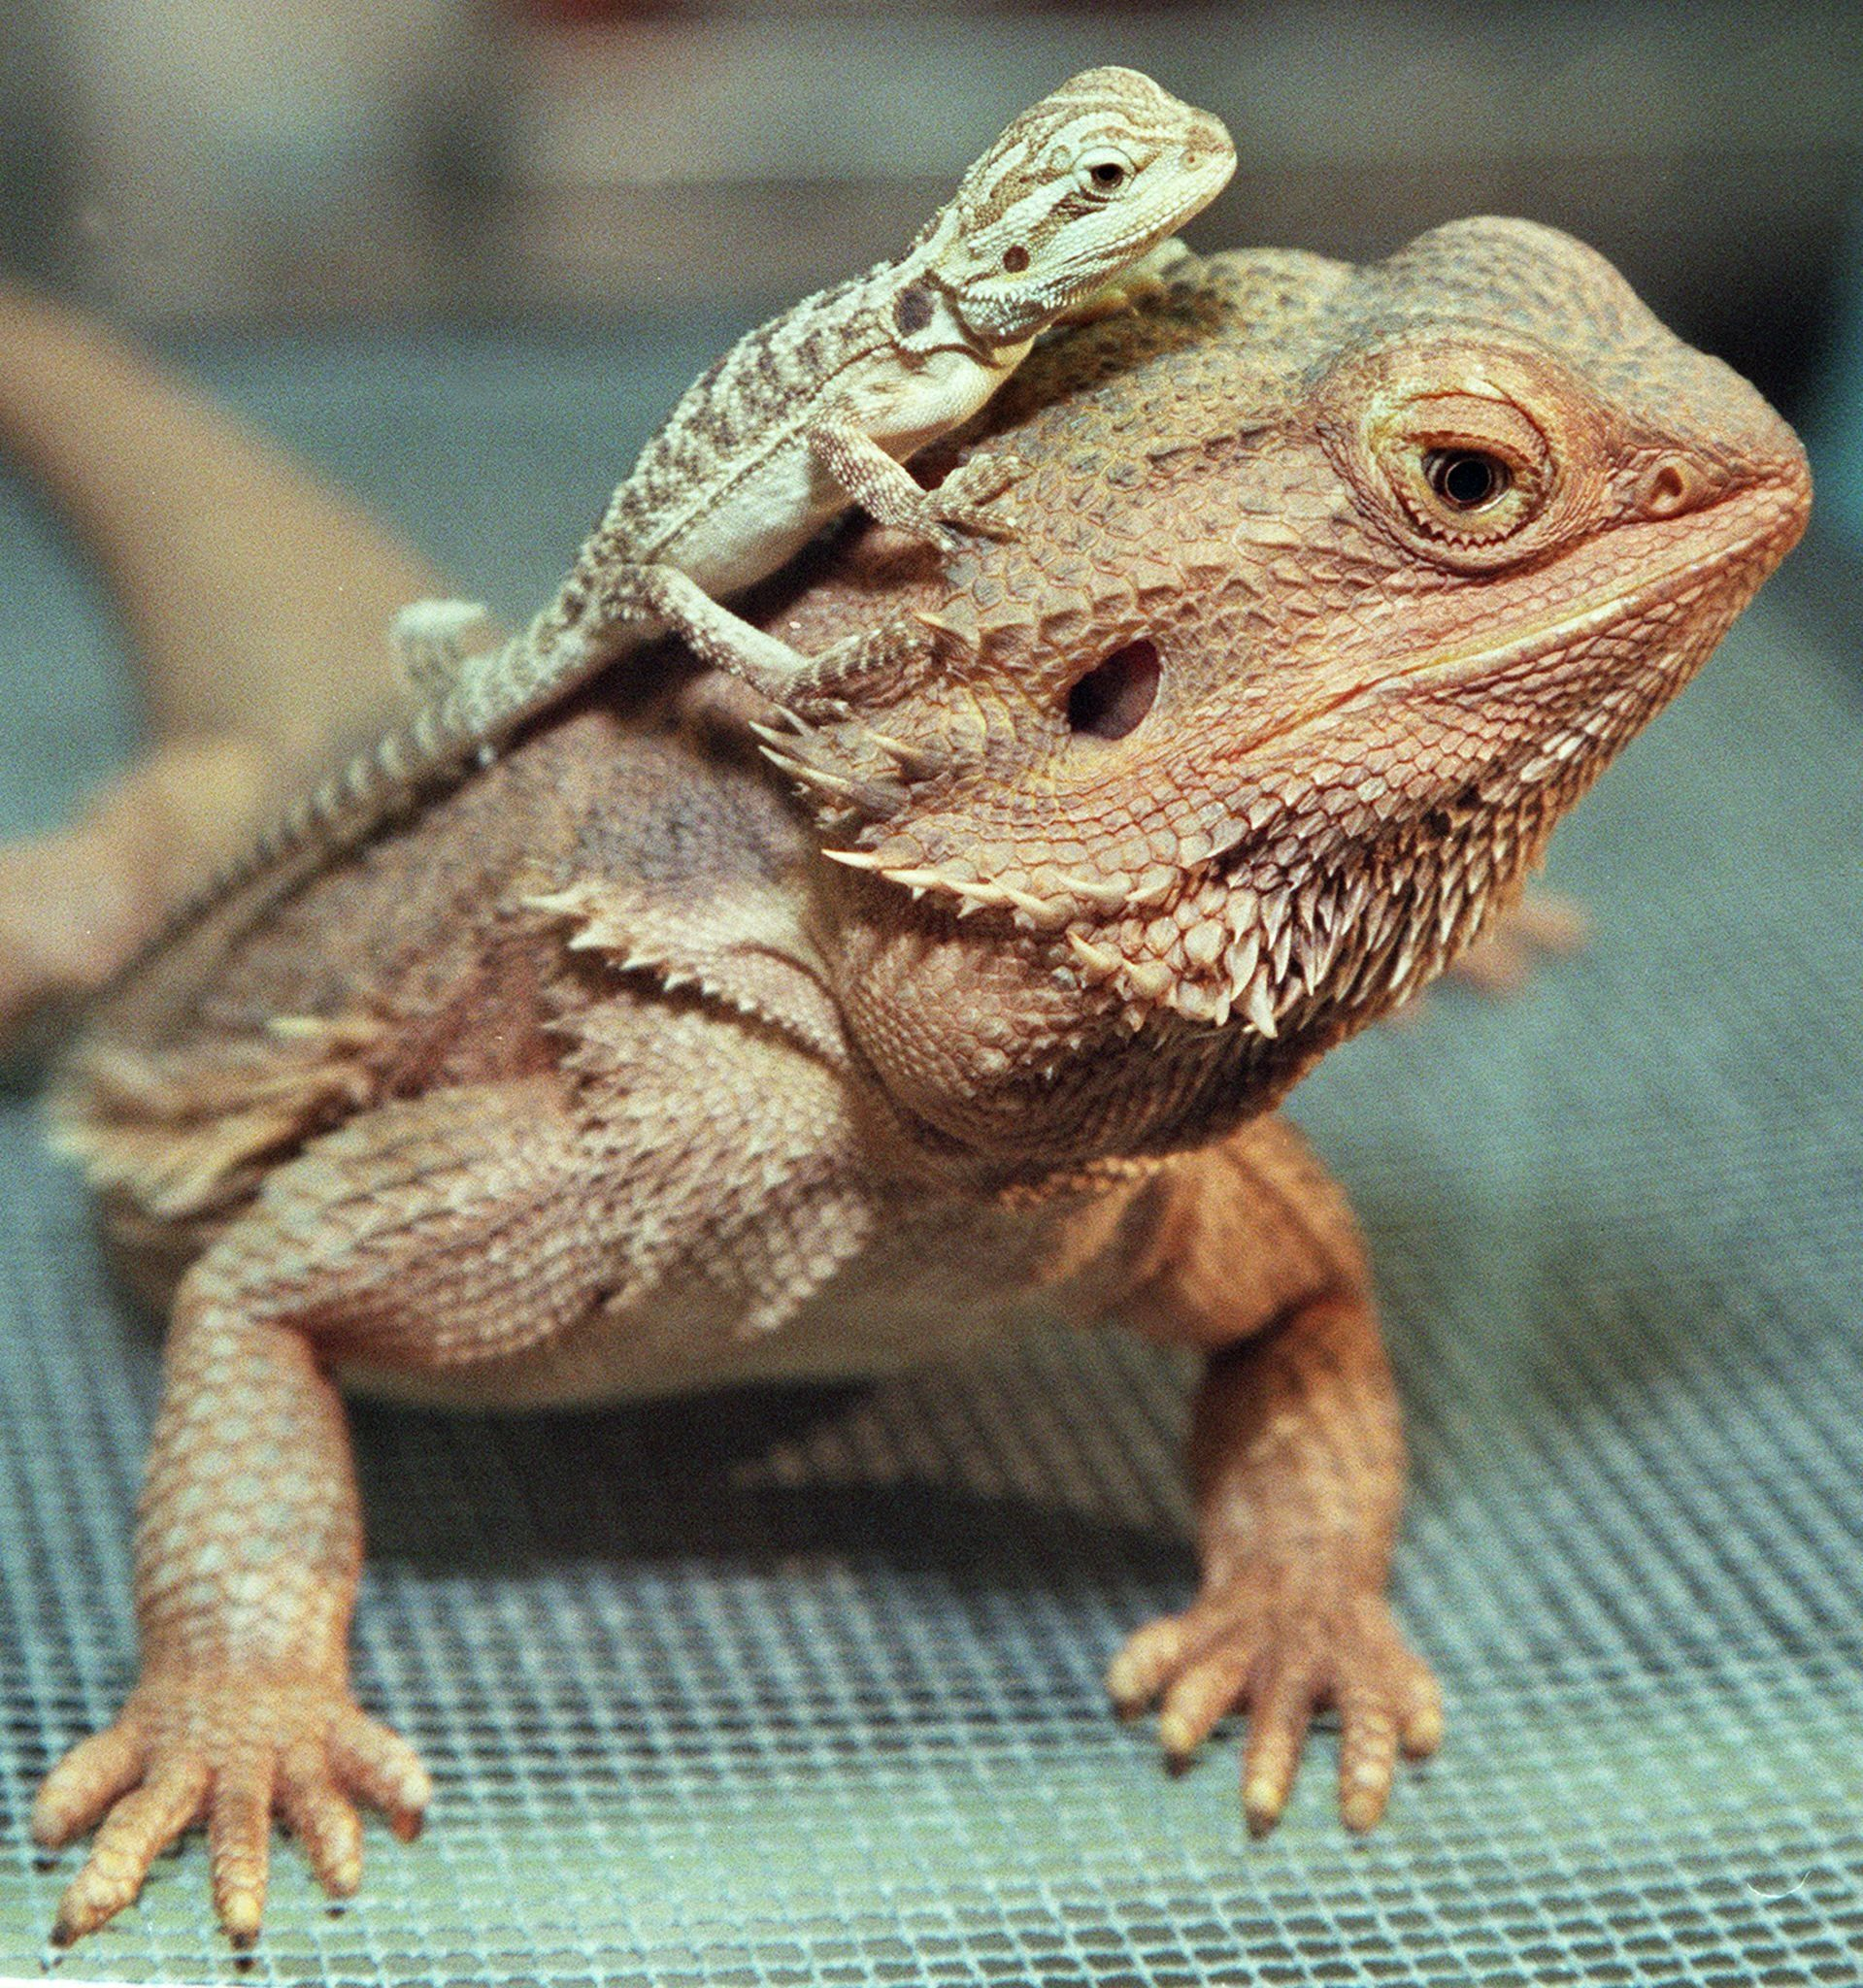 K Dragon Lizard Reptiles On Display At...